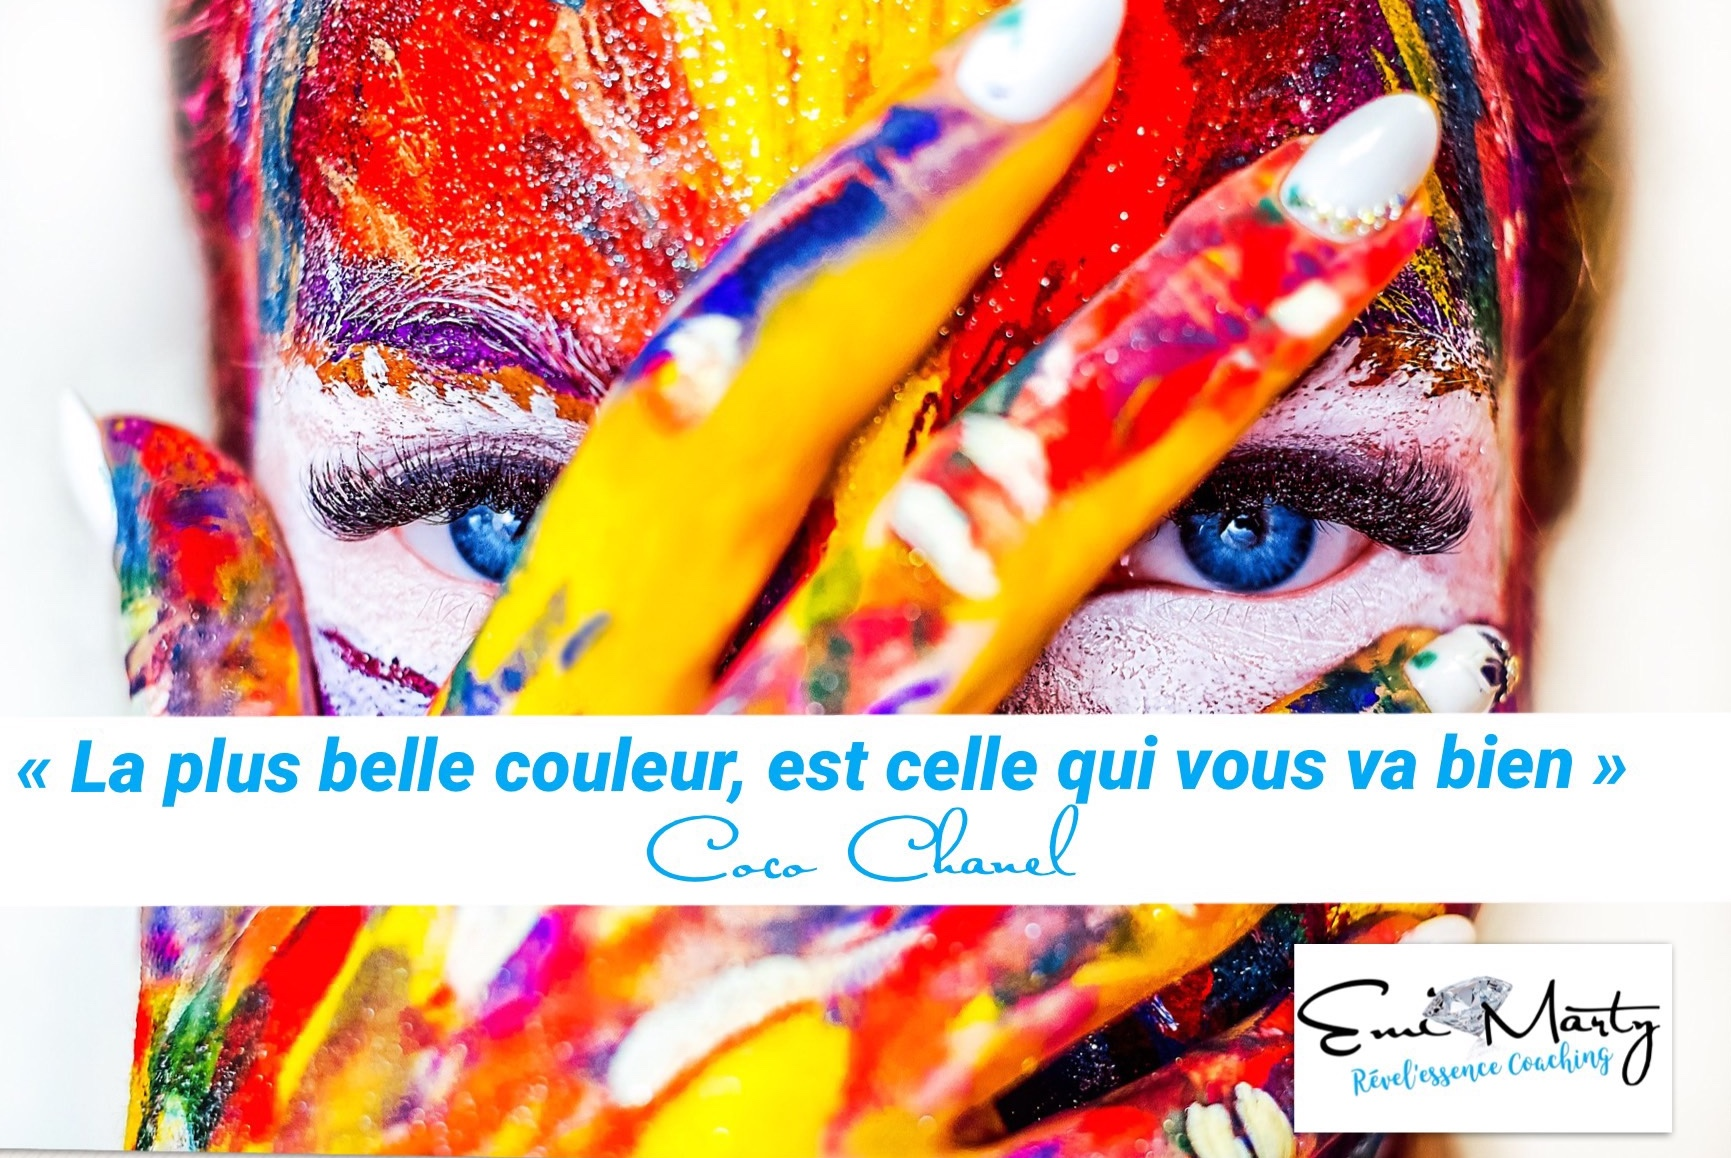 citation Coco Chanel